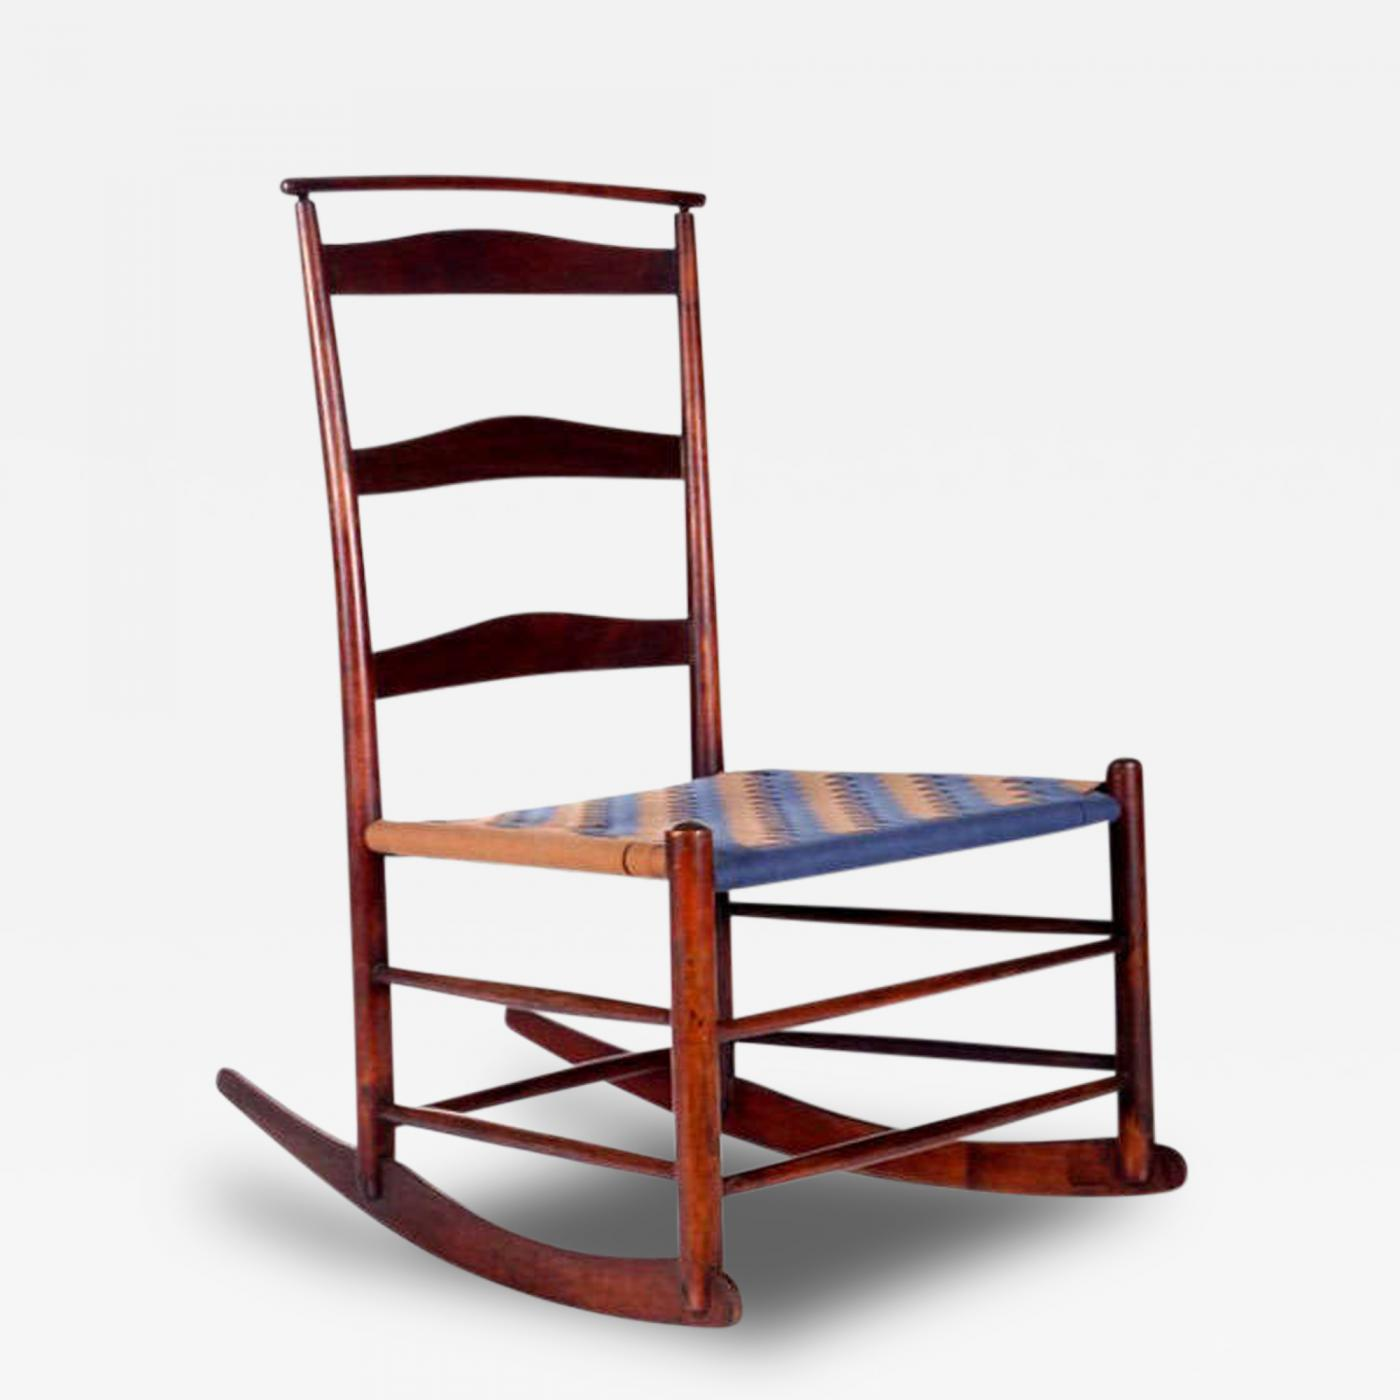 Listings / Furniture / Seating / Rocking Chairs